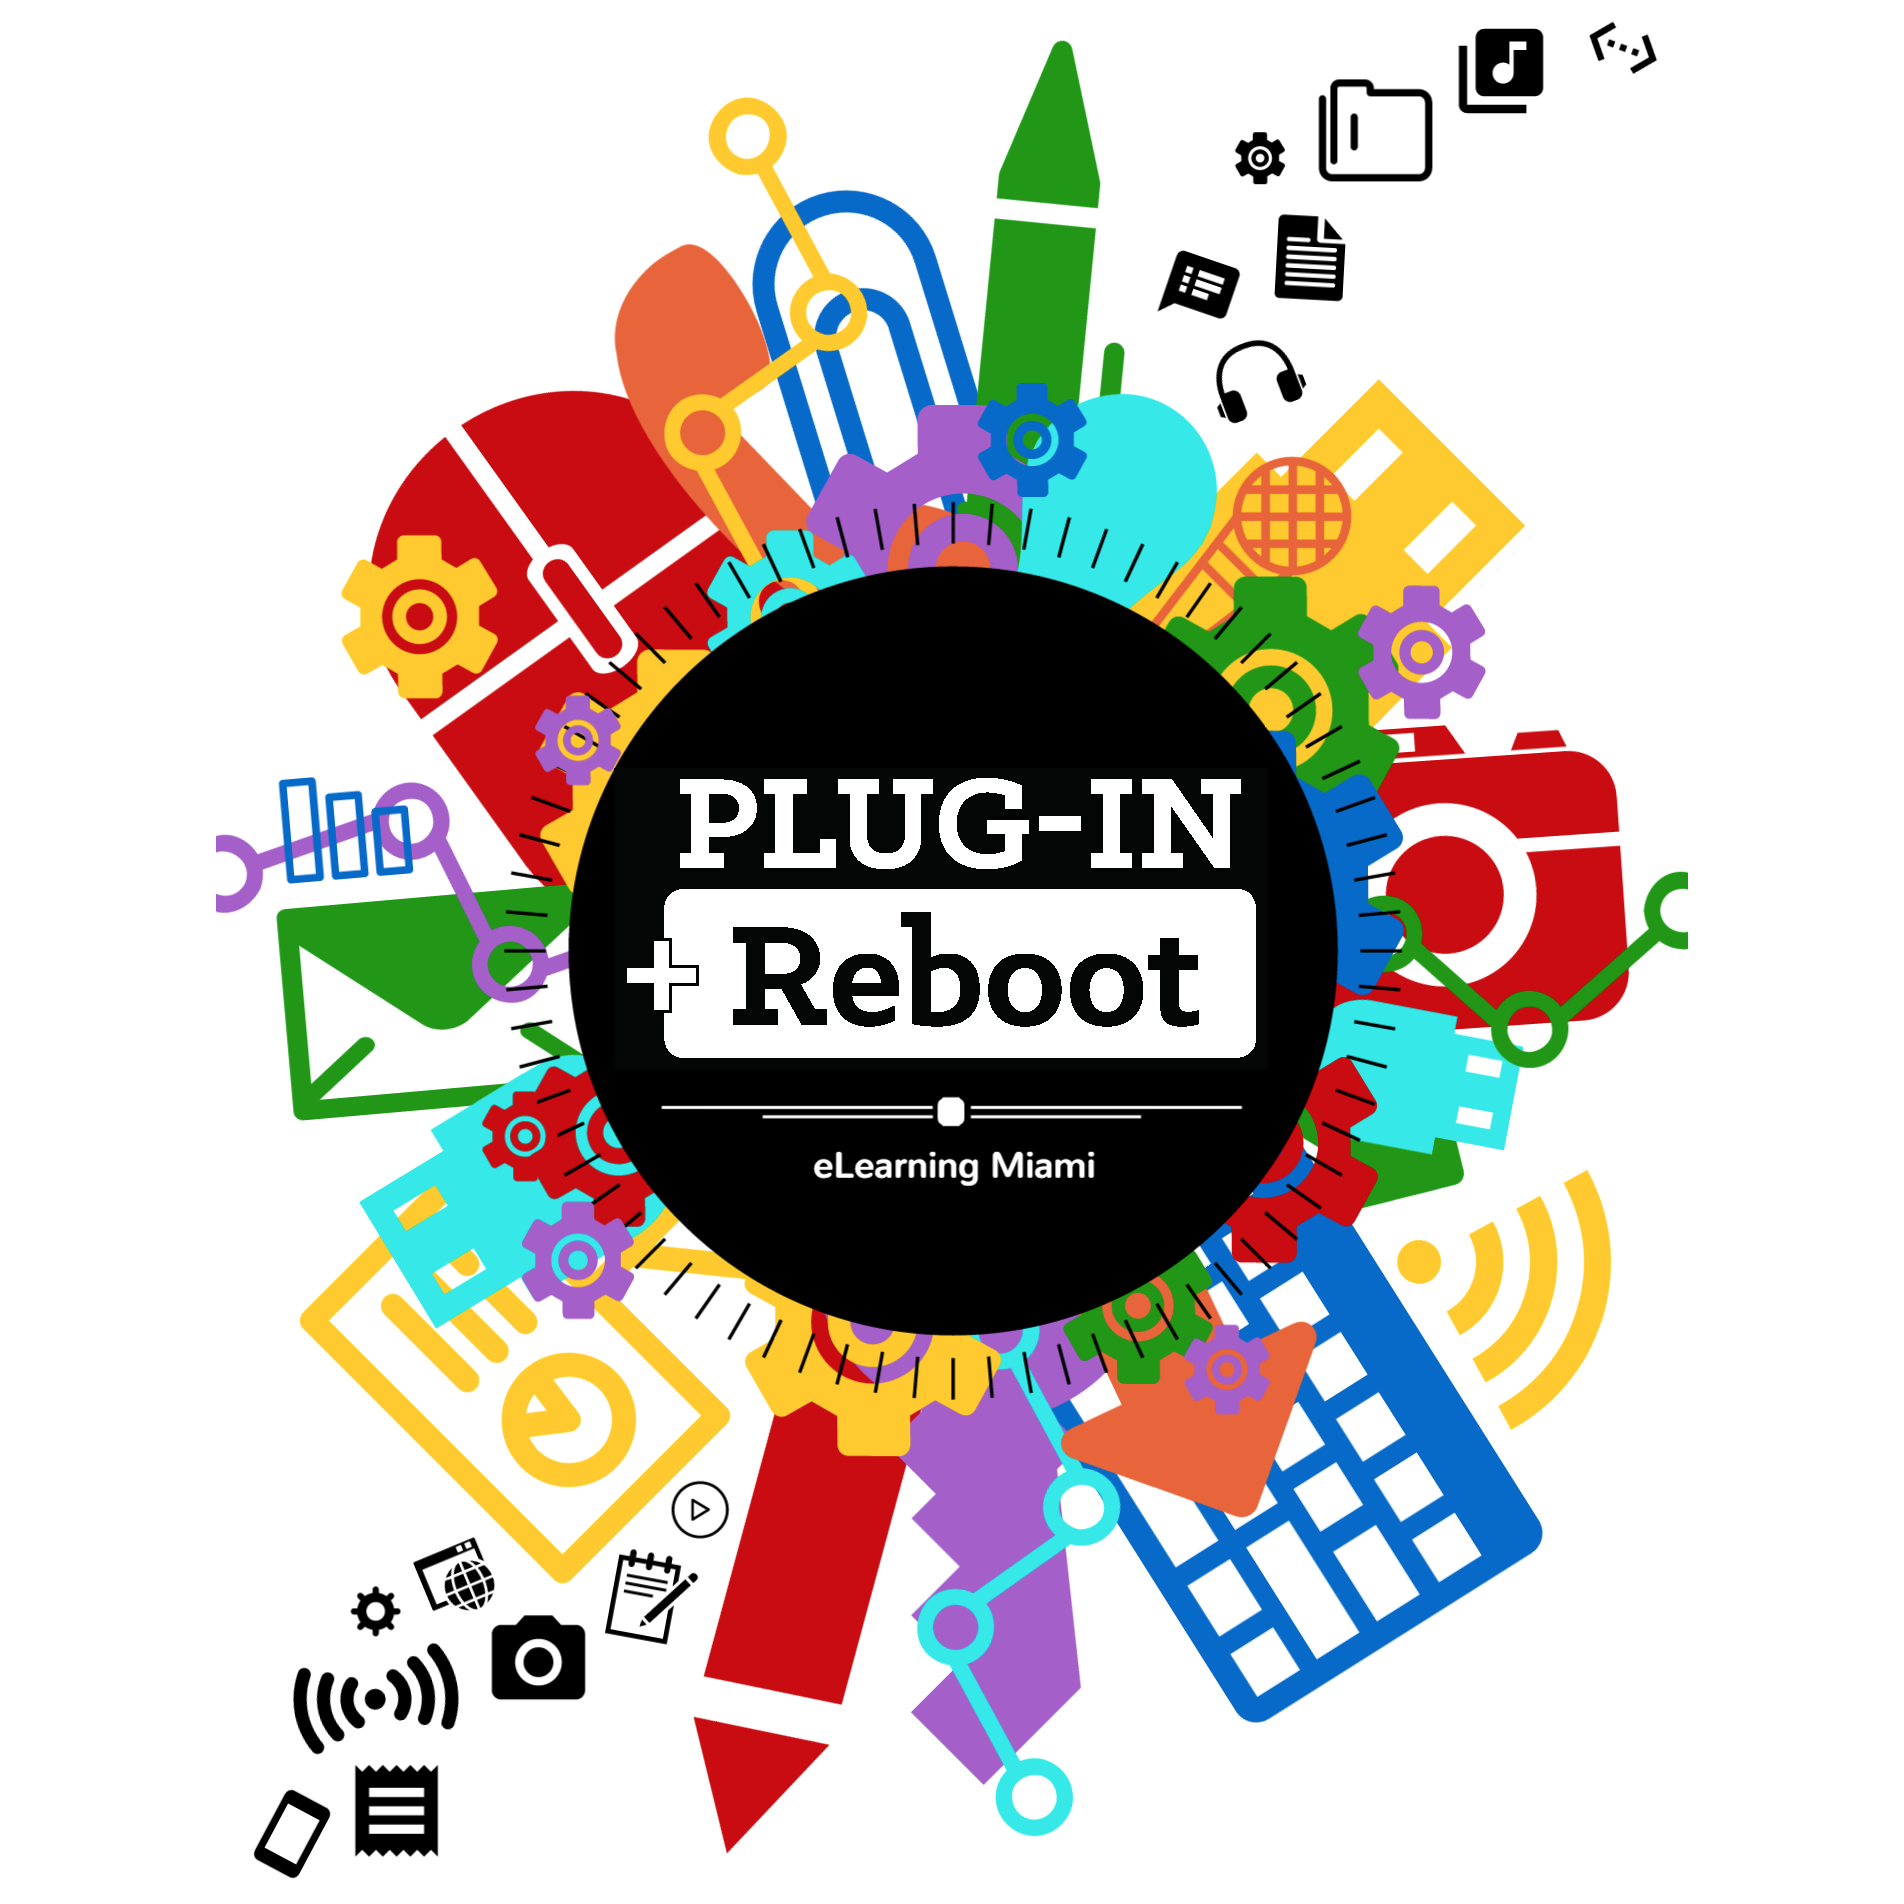 Plug-in & Reboot Event Miami University January 2017